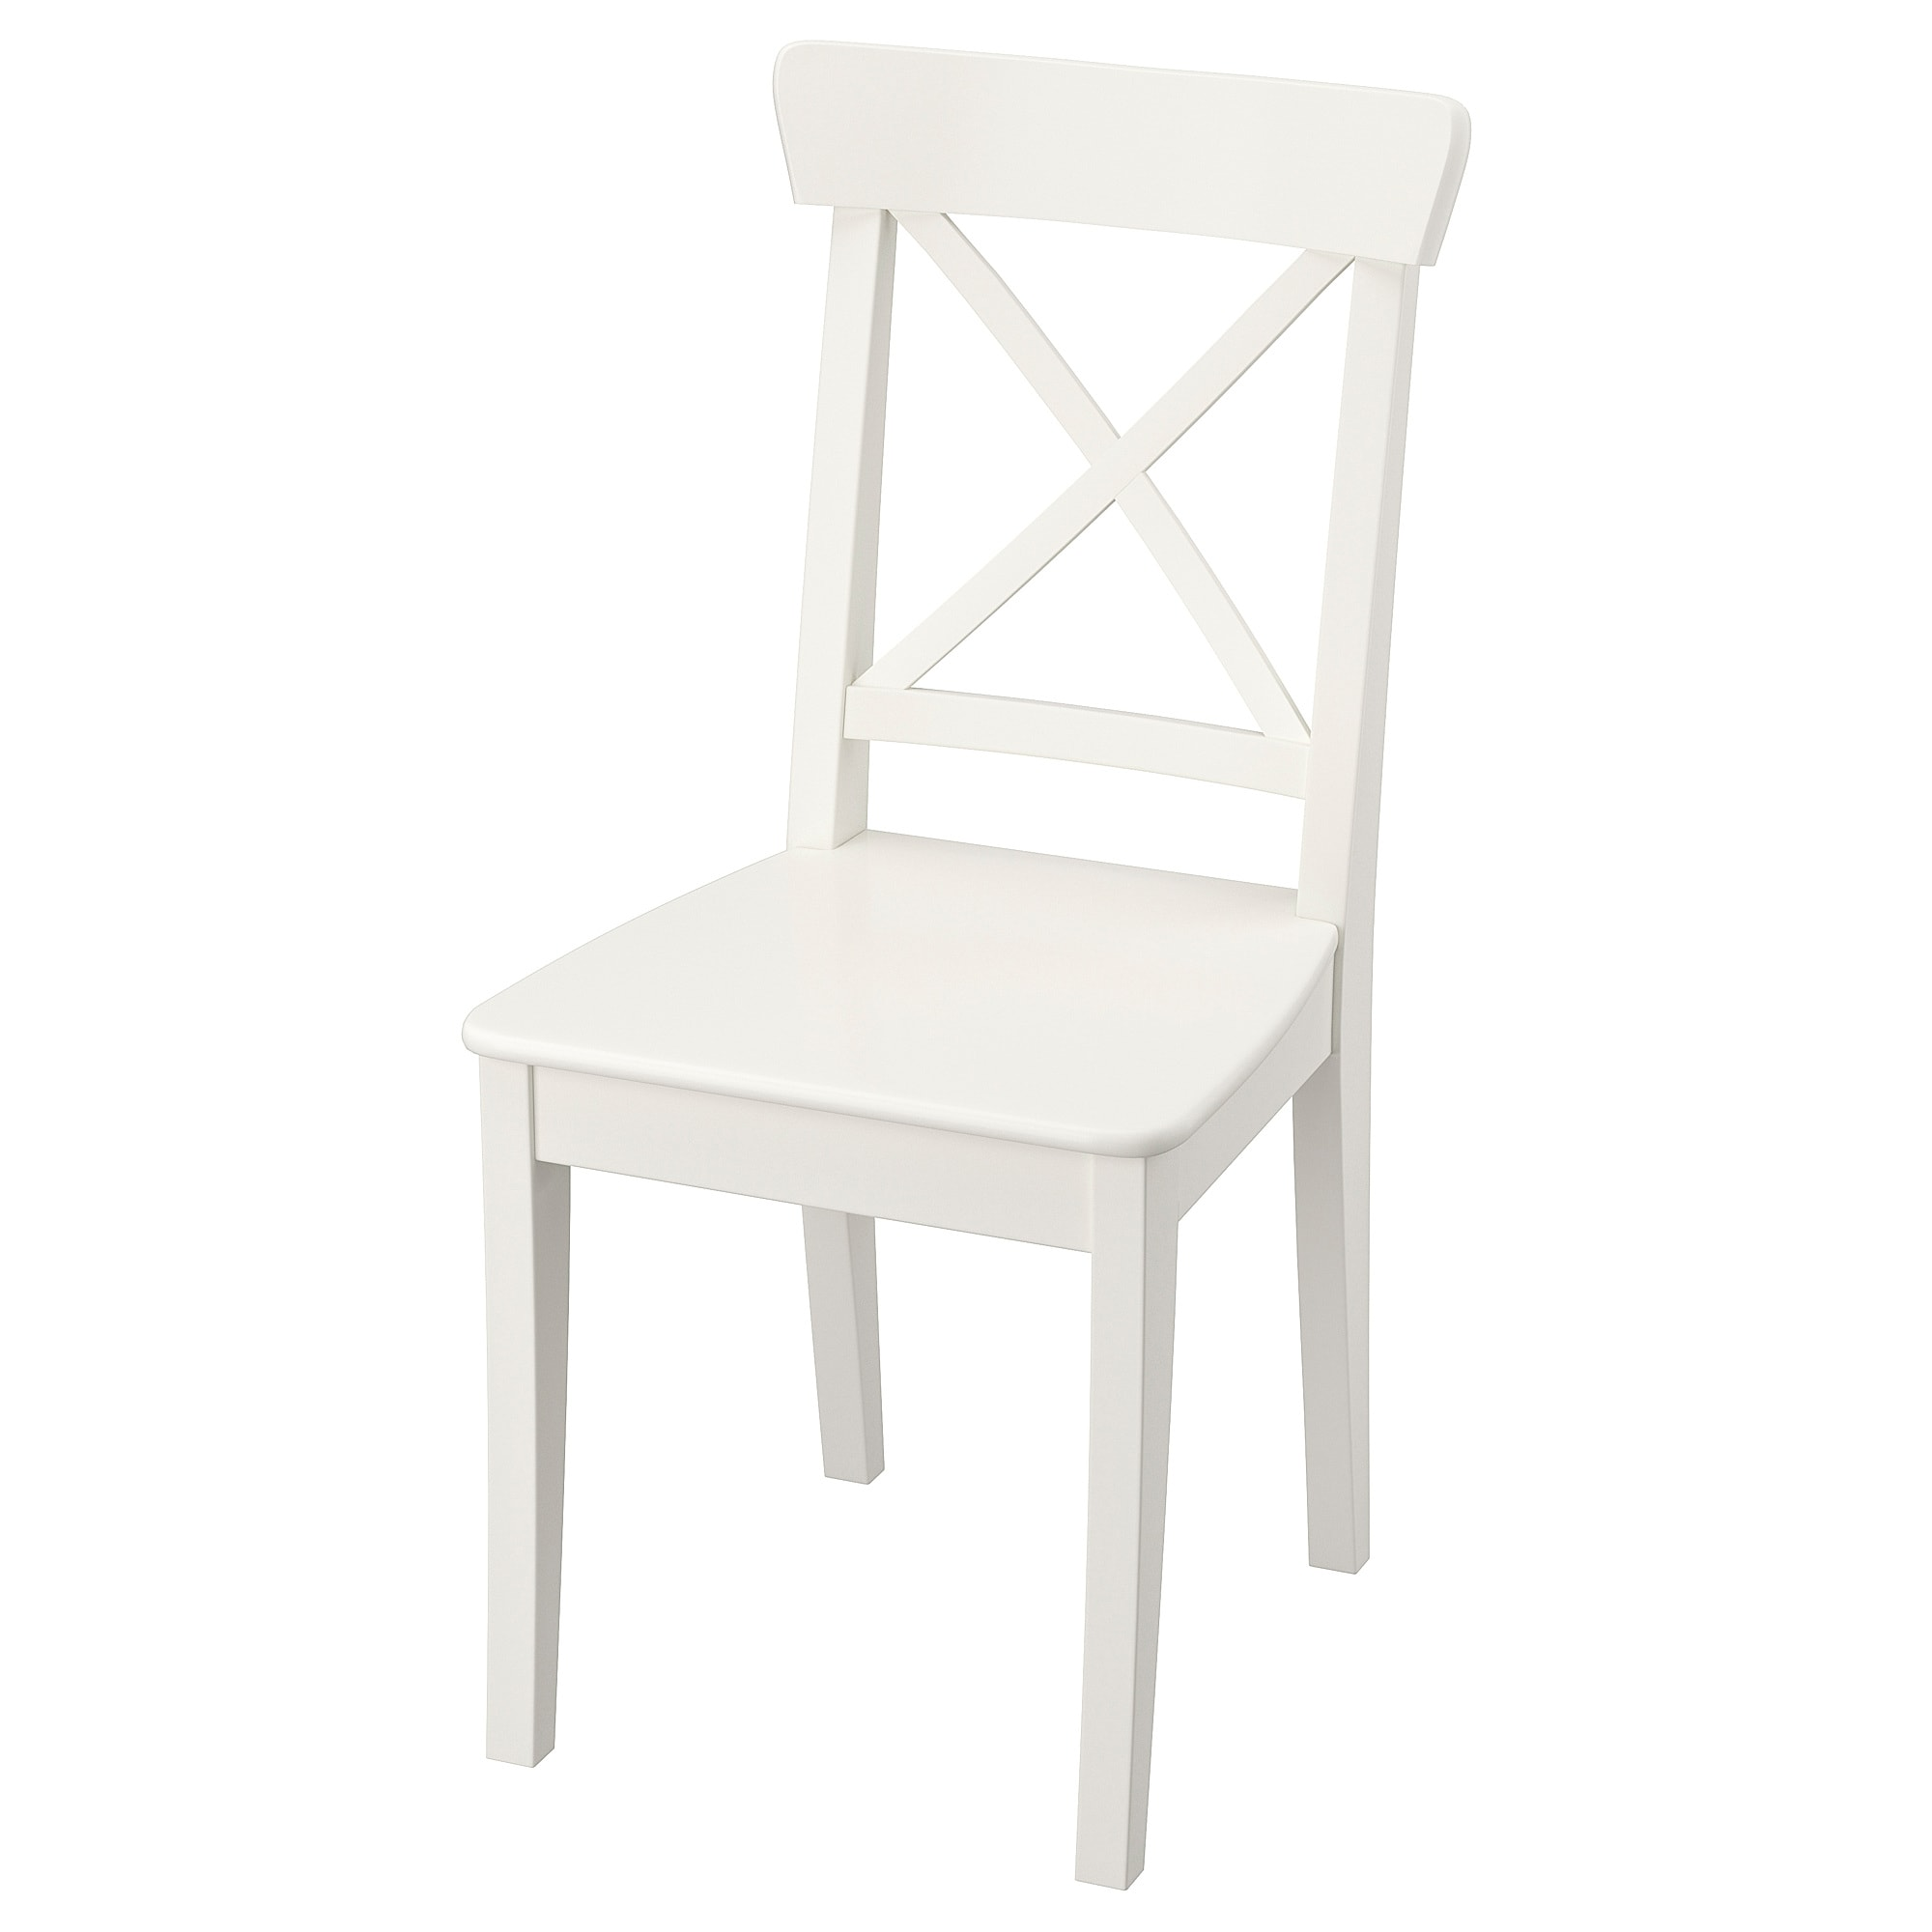 Ingolf Chair White Ikea Dining Chair Ikea Dining White Chair